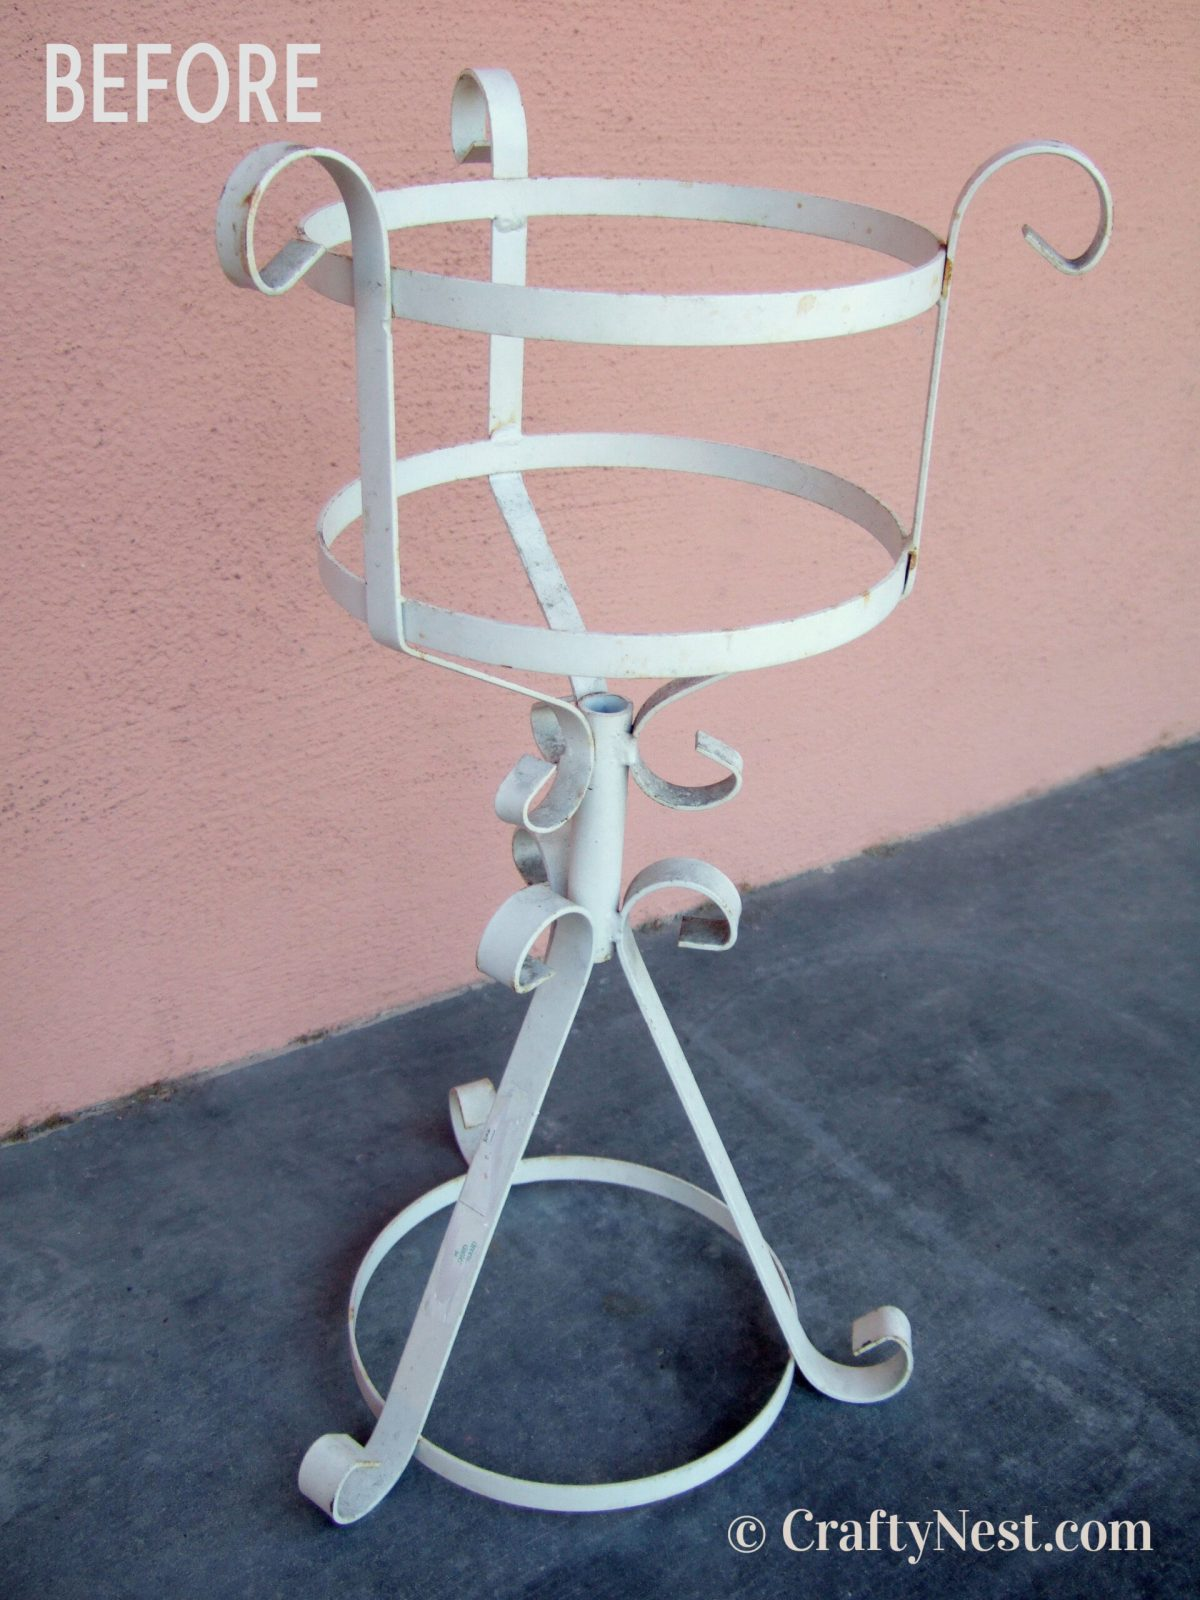 Rusty old metal plant stand, photo